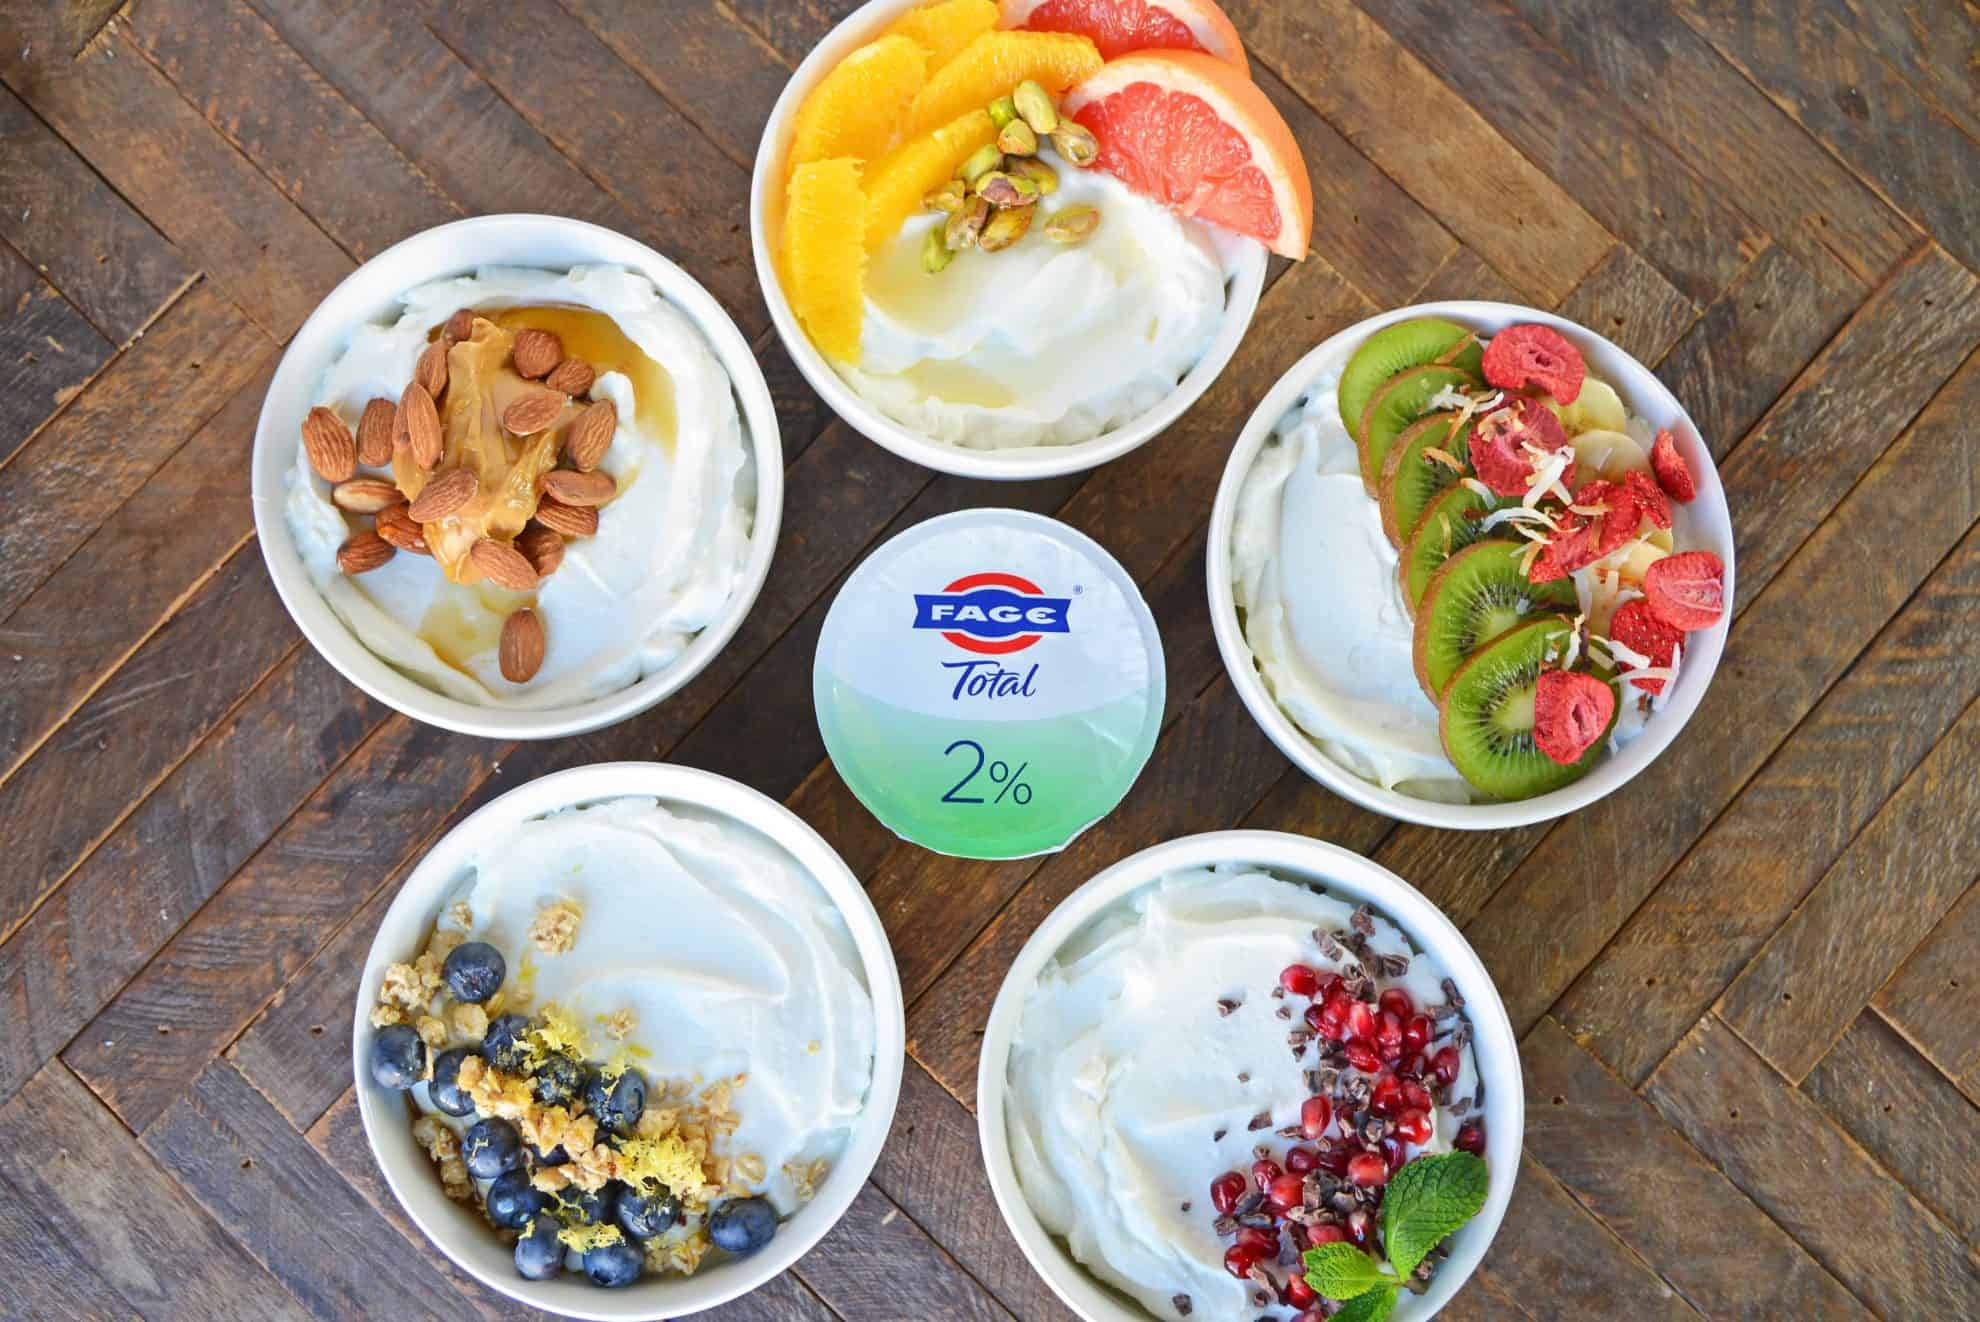 Discover 5 unique yogurt bowls using fresh fruit, natural sweeteners and nuts to help keep you on track for a healthy lifestyle while still feeling satisfied. #yogurtbowls www.savoryexperiments.com